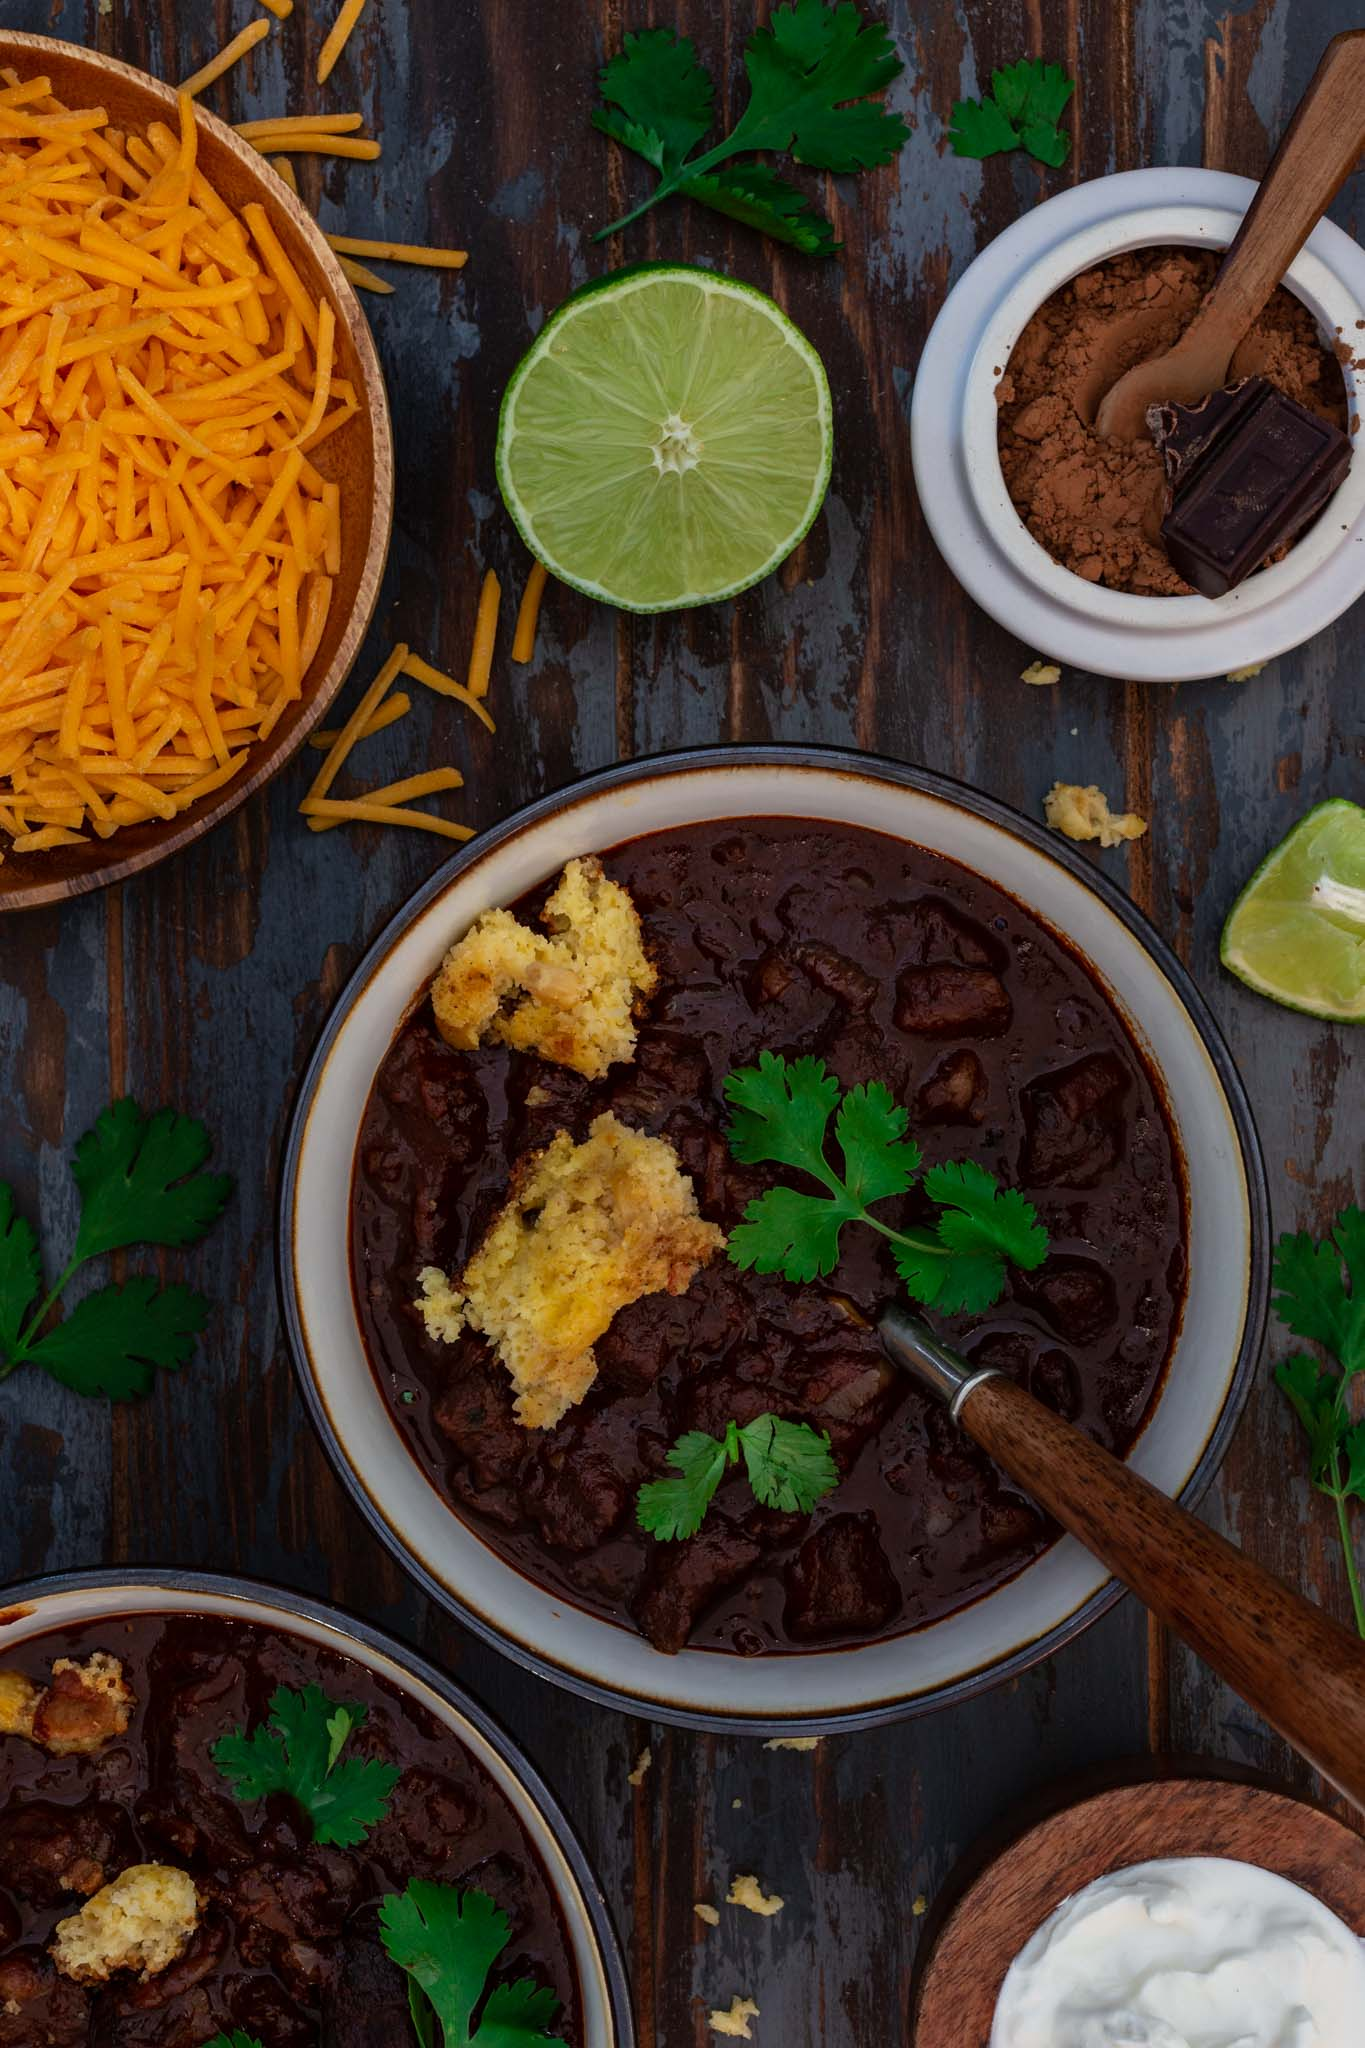 Two bowls of Double Chocolate Chili being served with cheddar cheese, sour cream and lime.